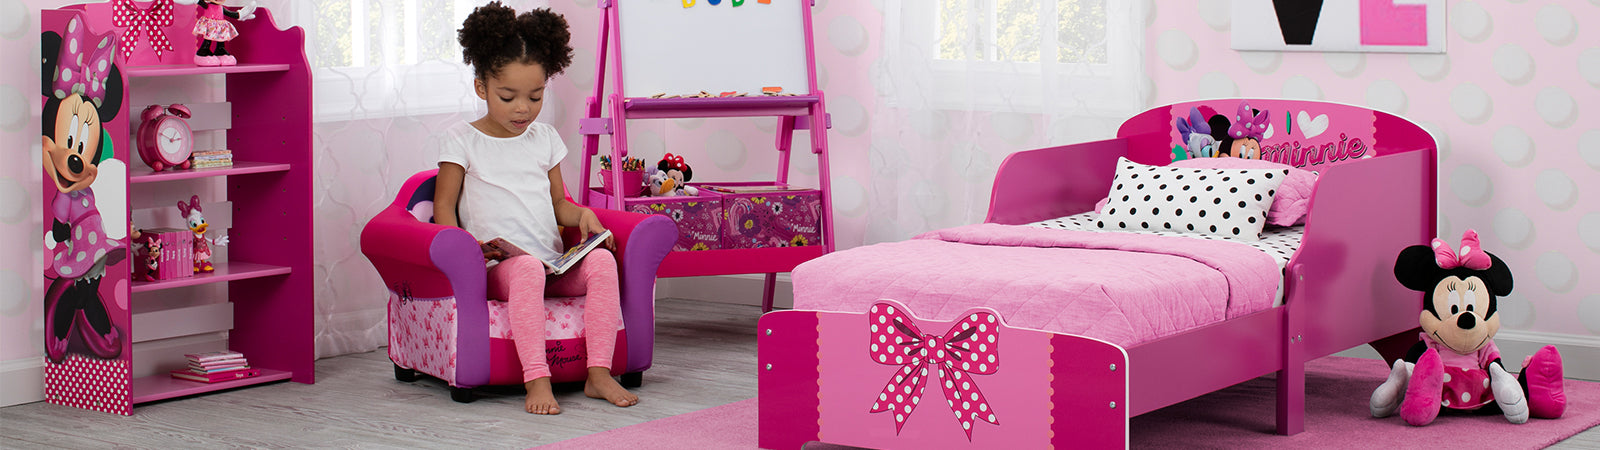 Home · Kid Chairs. Girl Reading Next To Minnie Mouse Wooden Bed